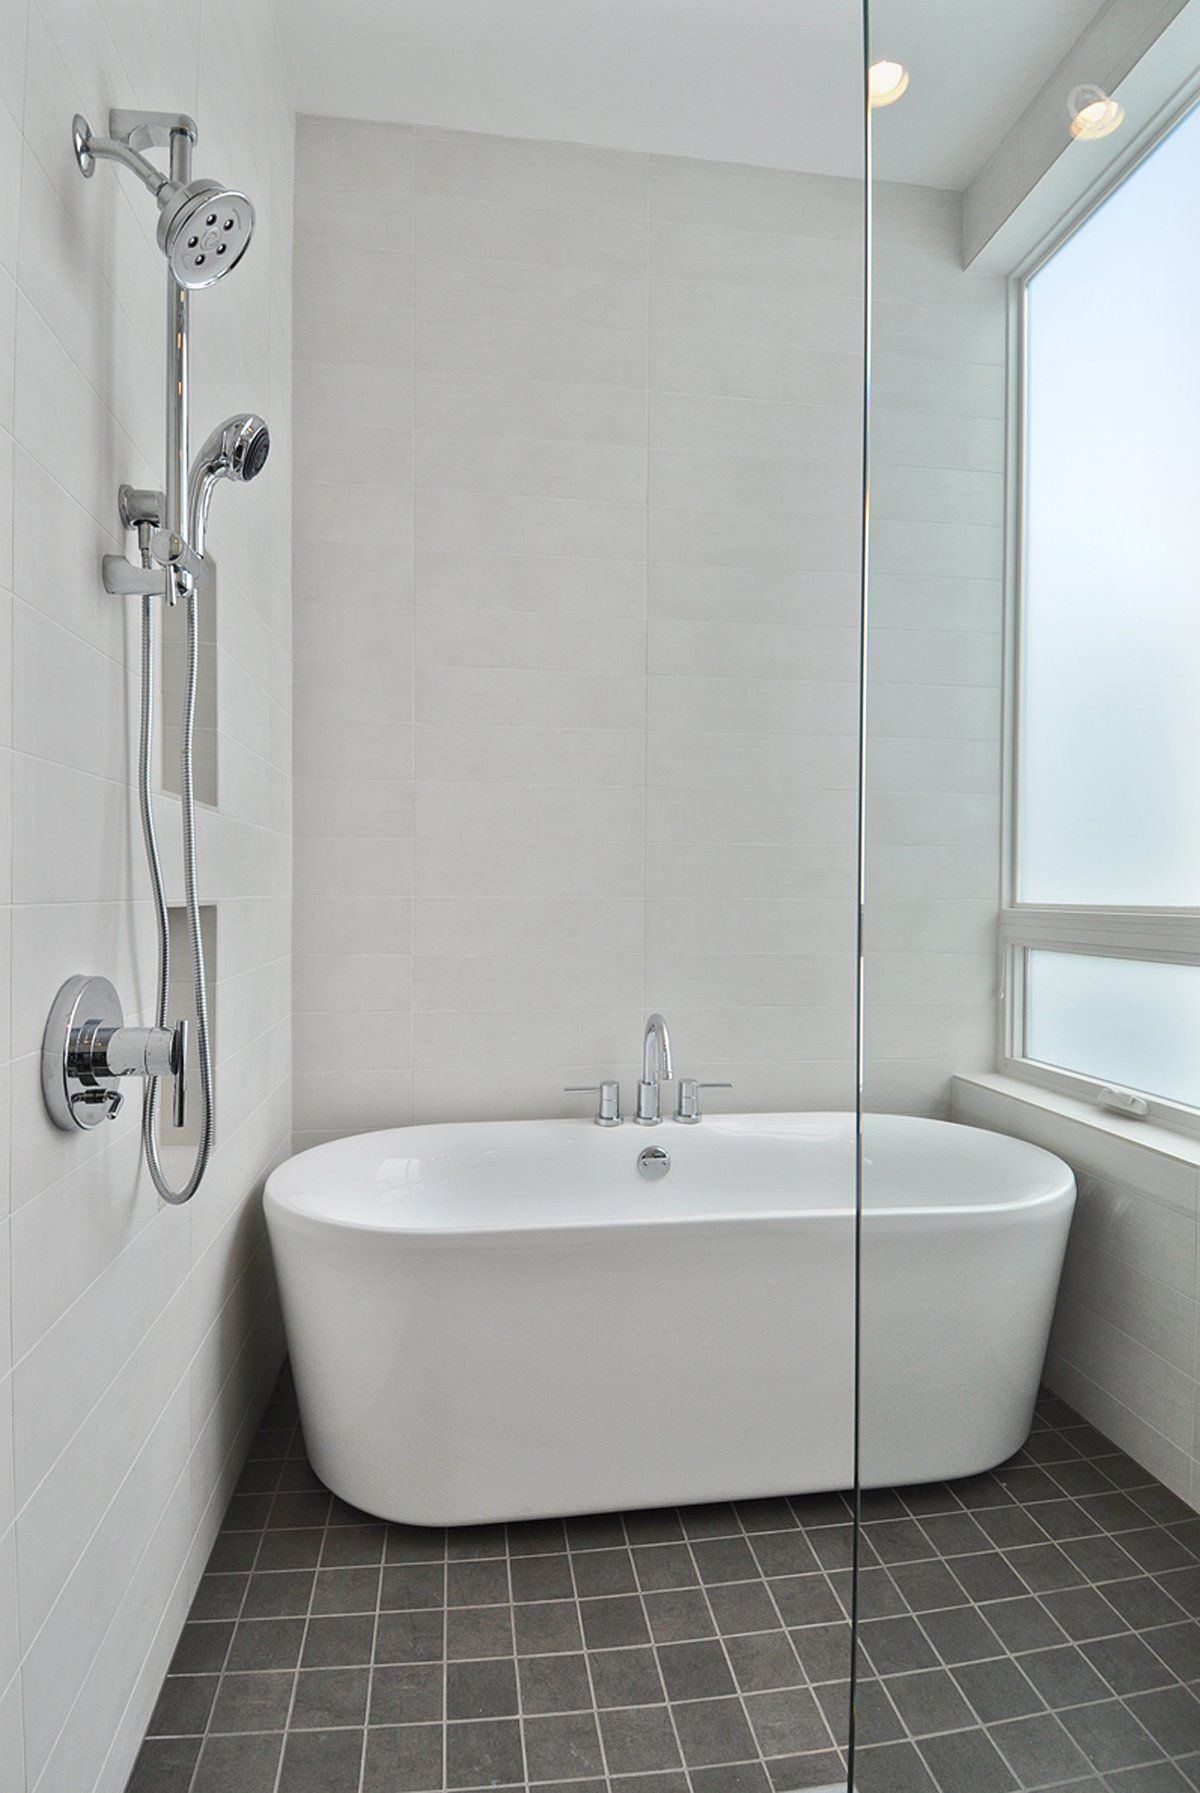 Complete Your Charming Bathroom With Freestanding Tubs Ideas White Freestanding Tubs On Dark